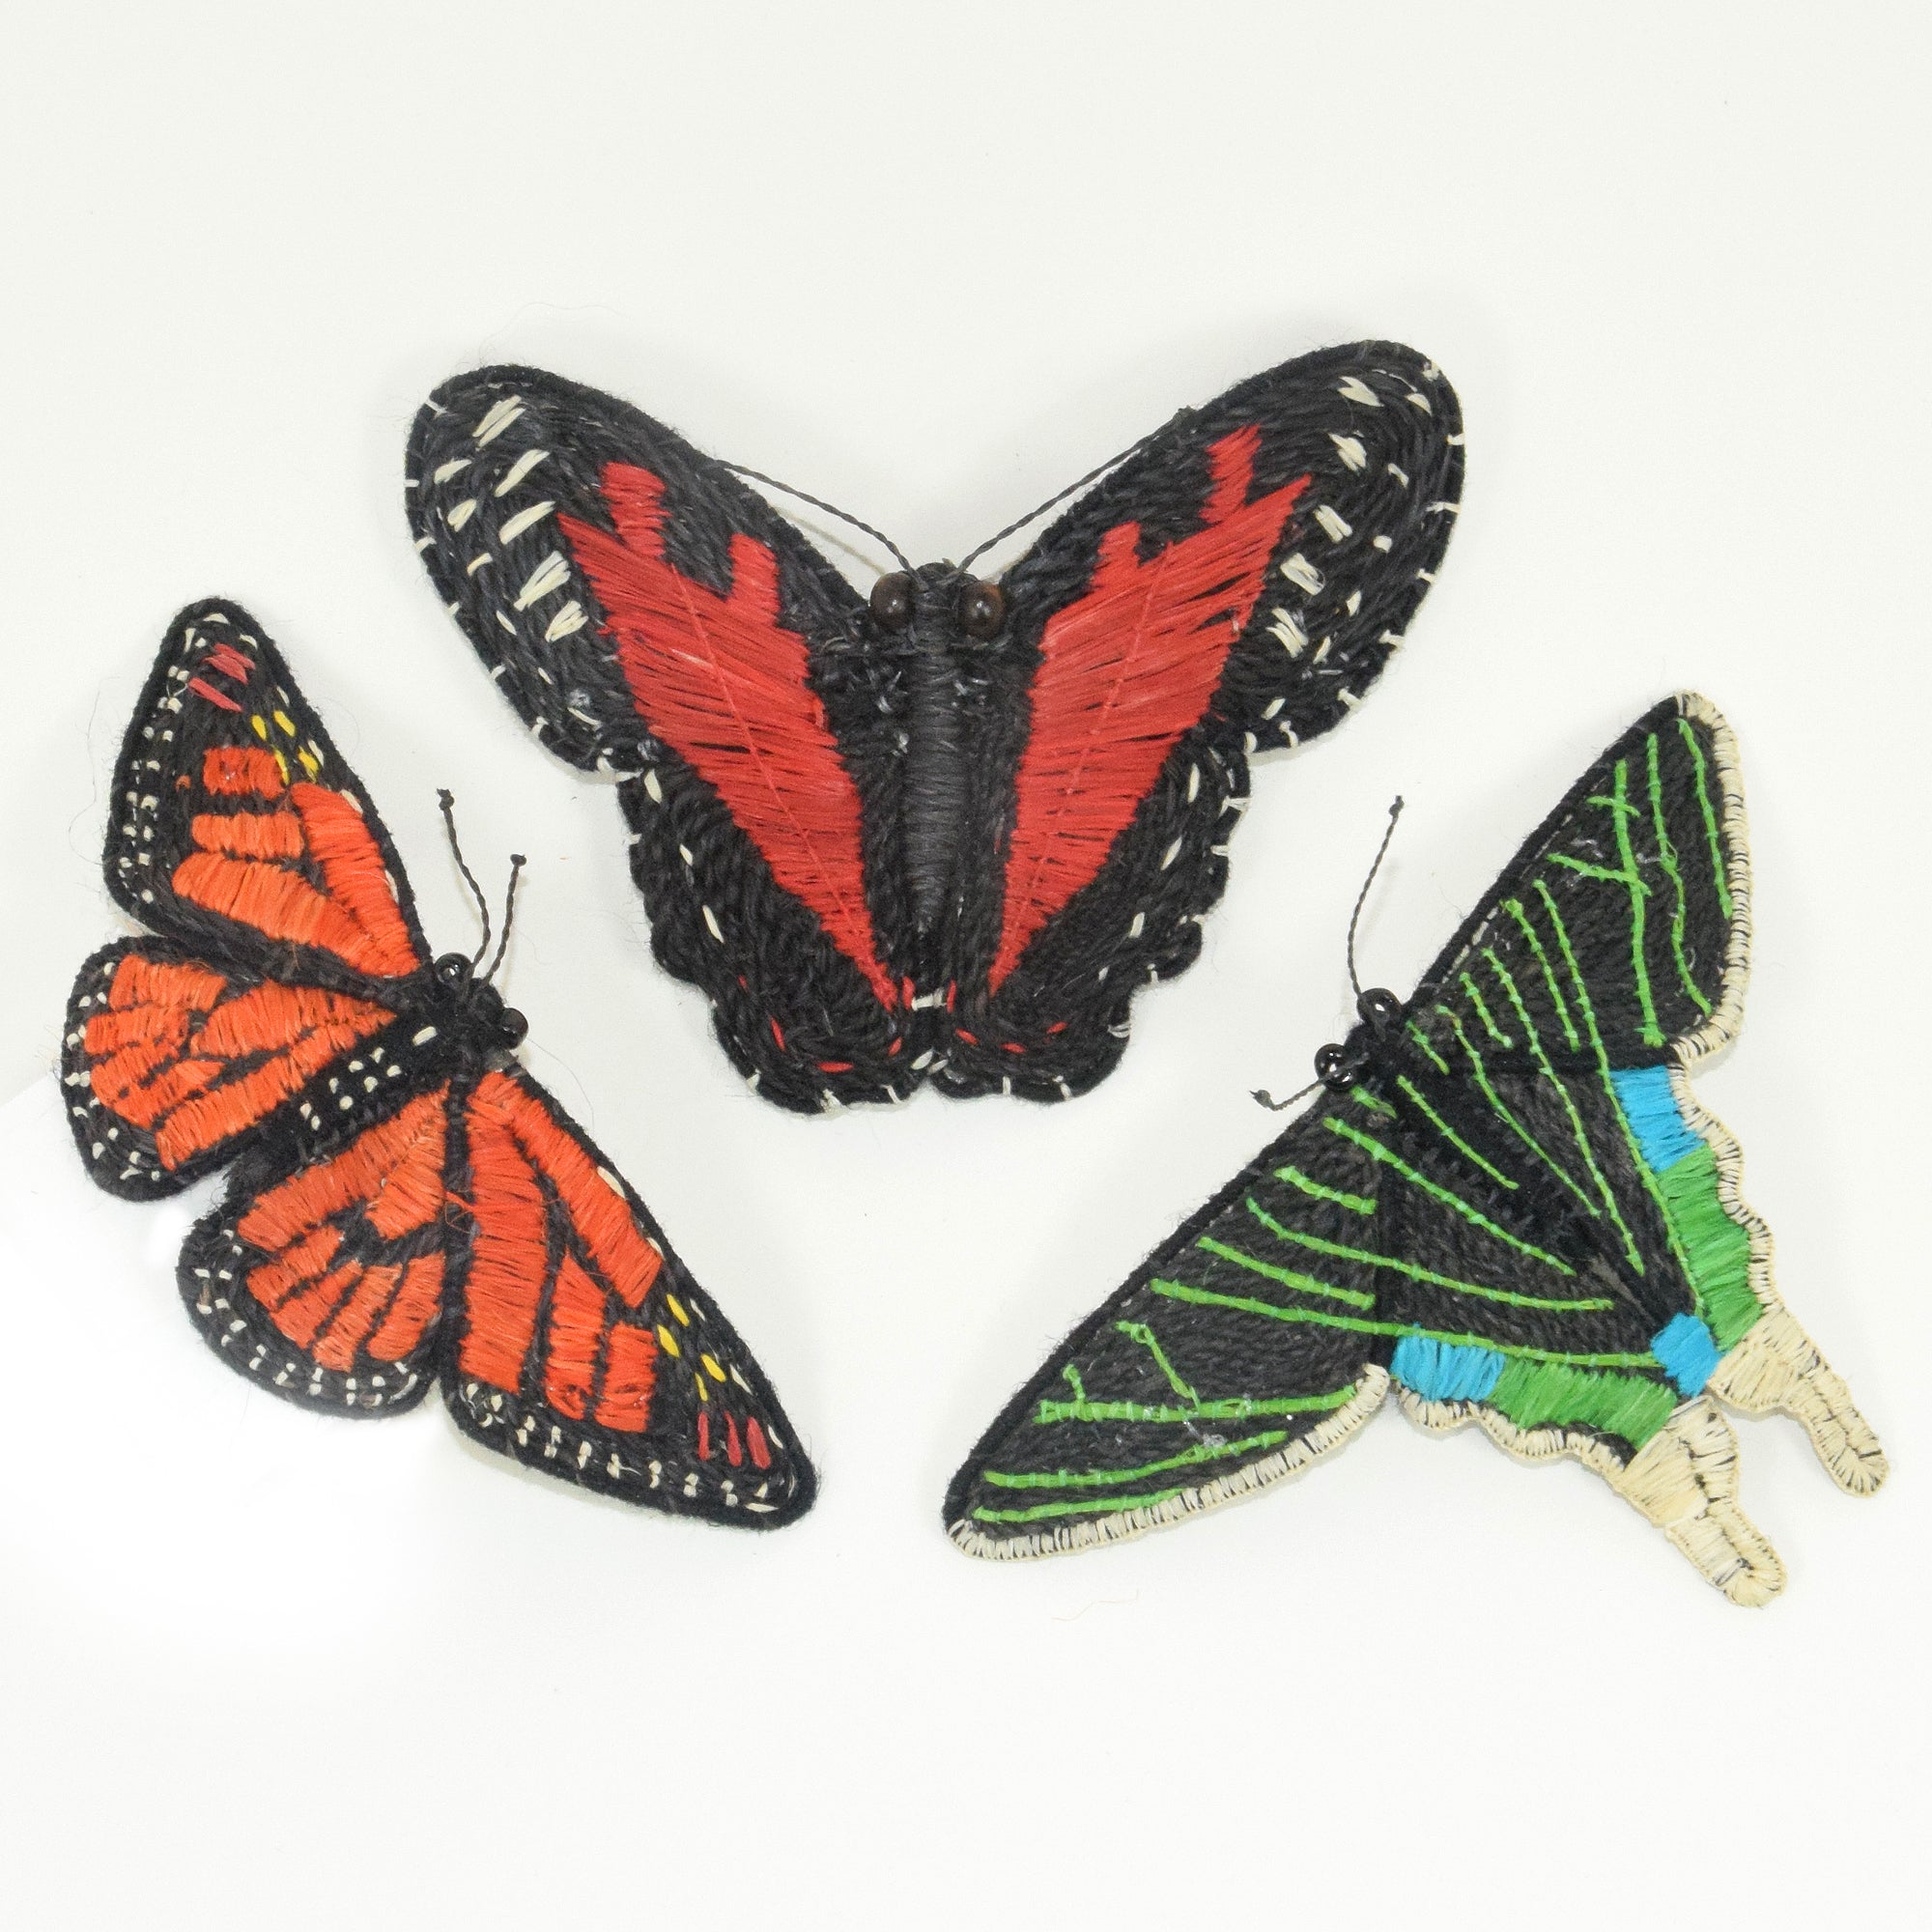 Woven butterfly hair barrettes